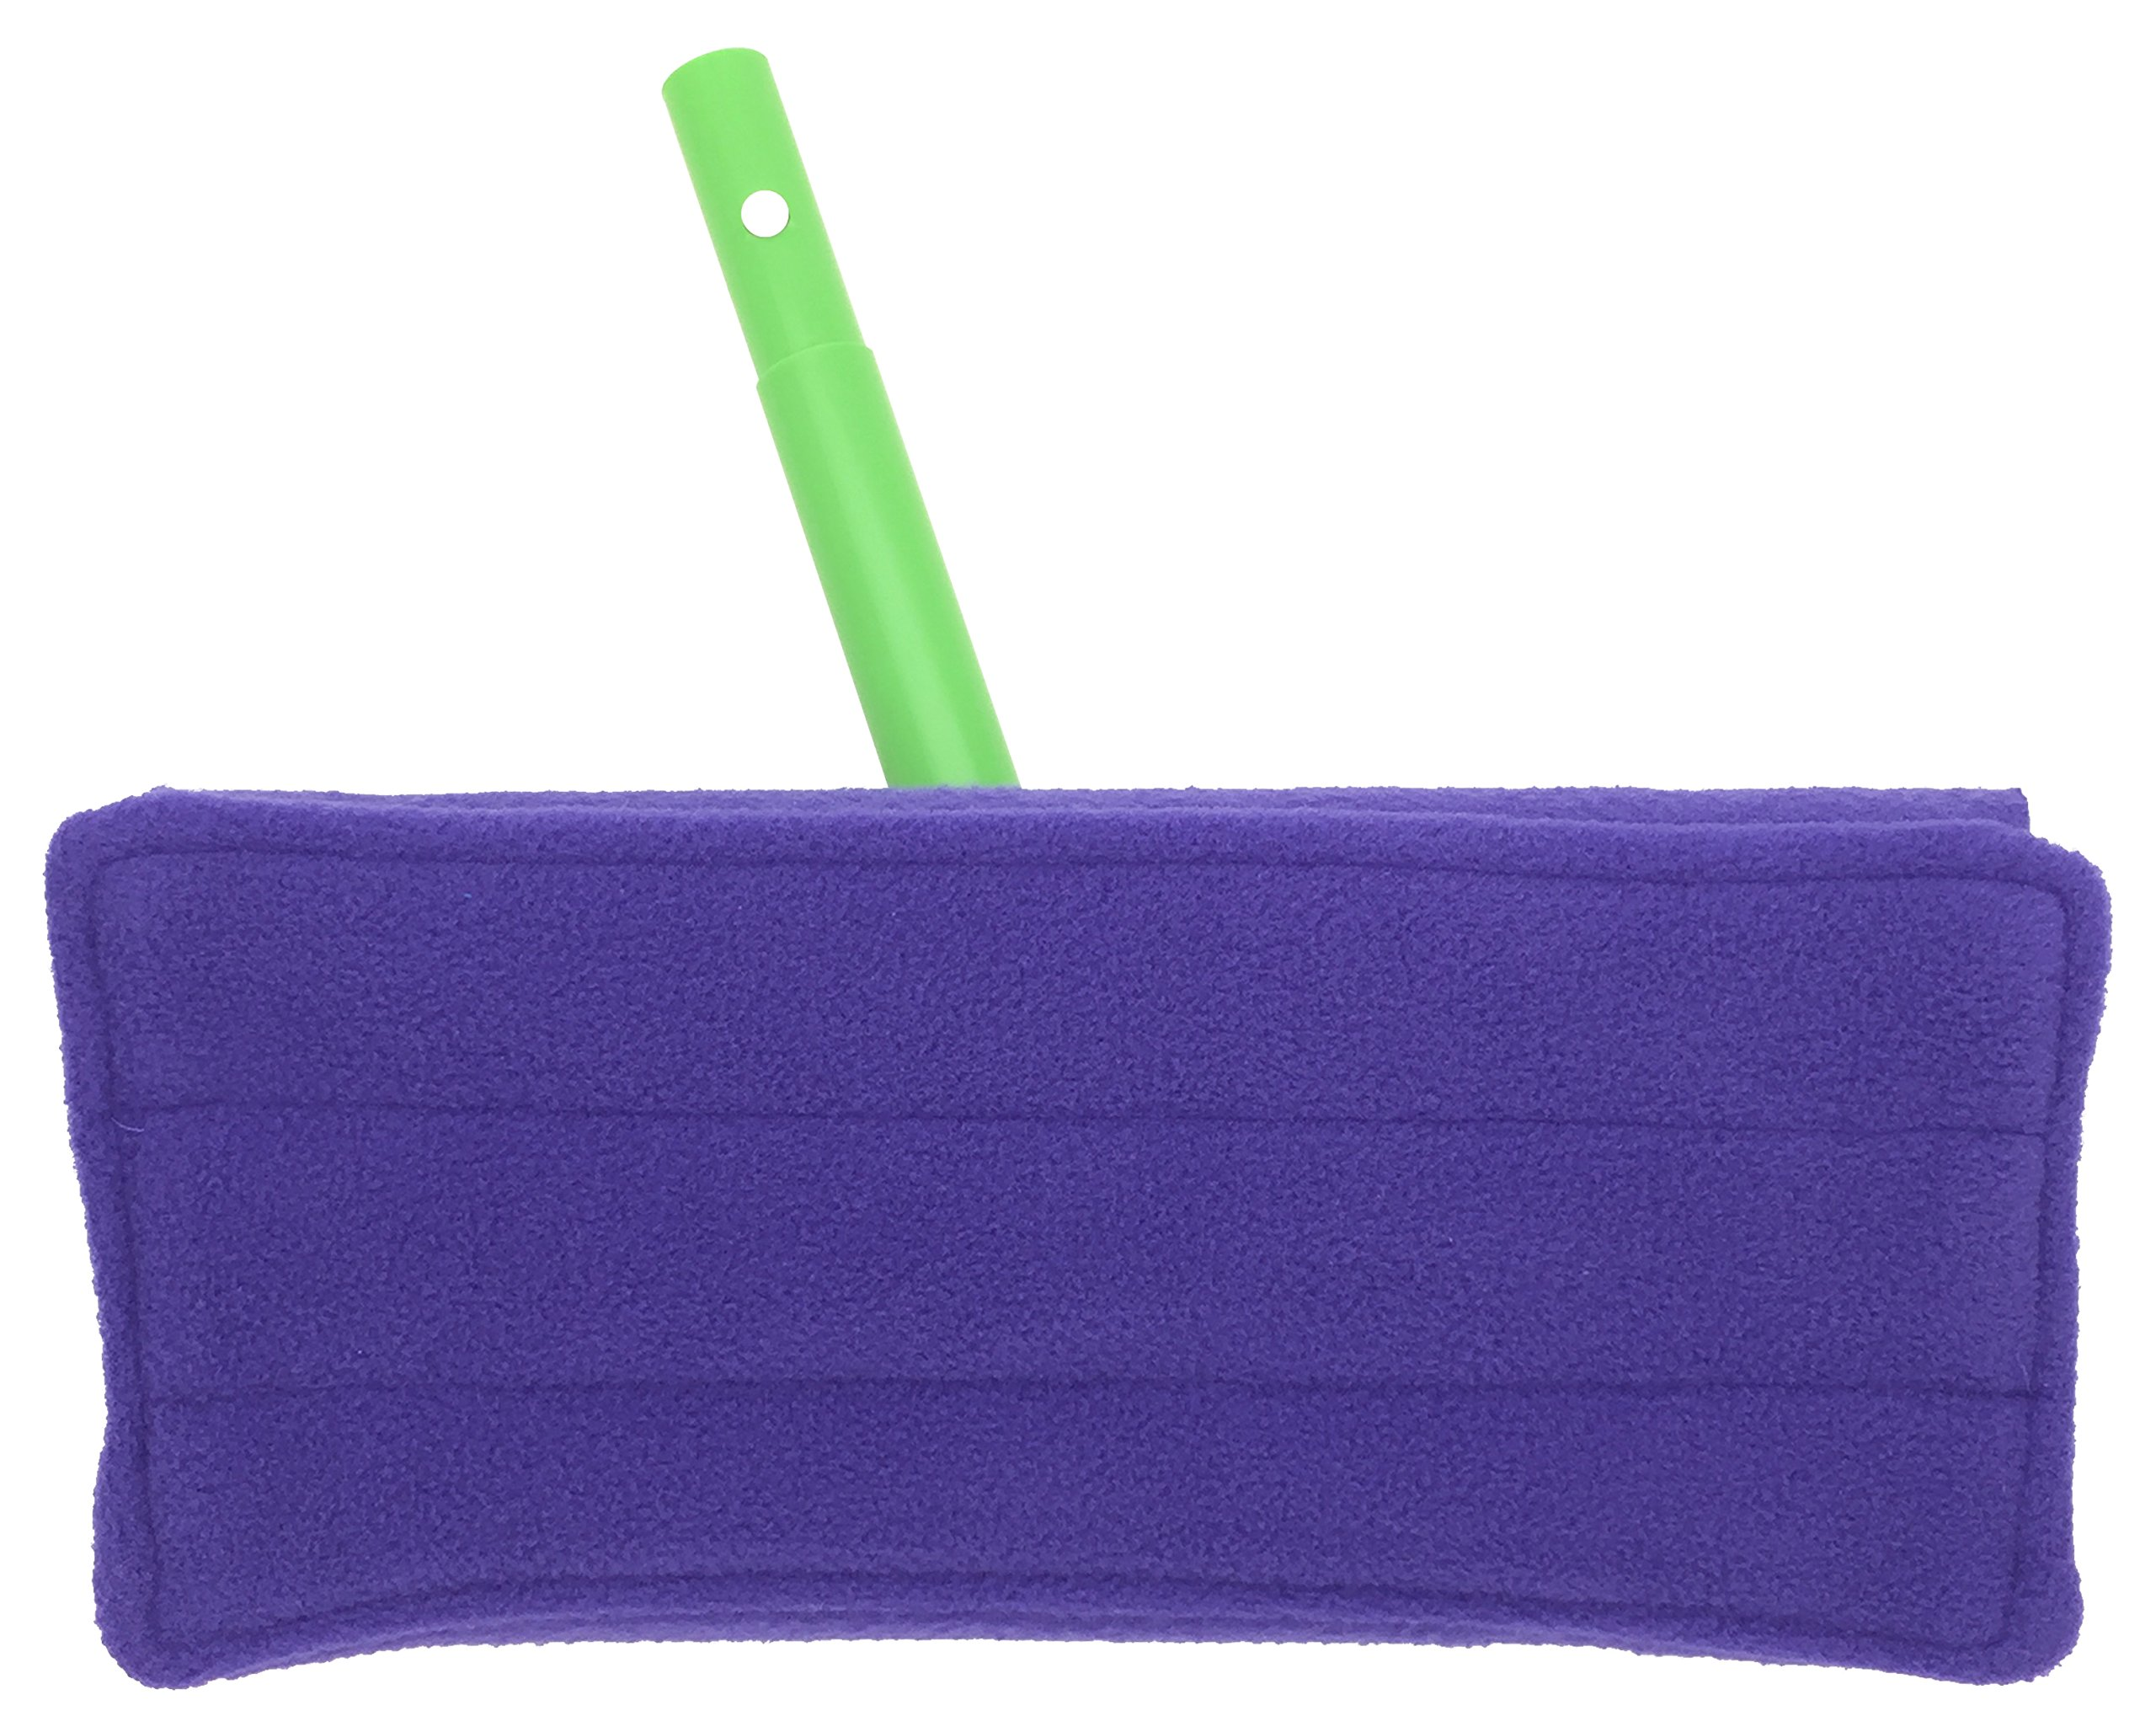 Wet Mop Pads for Sweeper - 2 Sided Fleece & Terry Cloth - Washable Reusable by Xanitize (4-Pack) (Standard, Purple, Blue, Green, Pink) by Xanitize (Image #6)